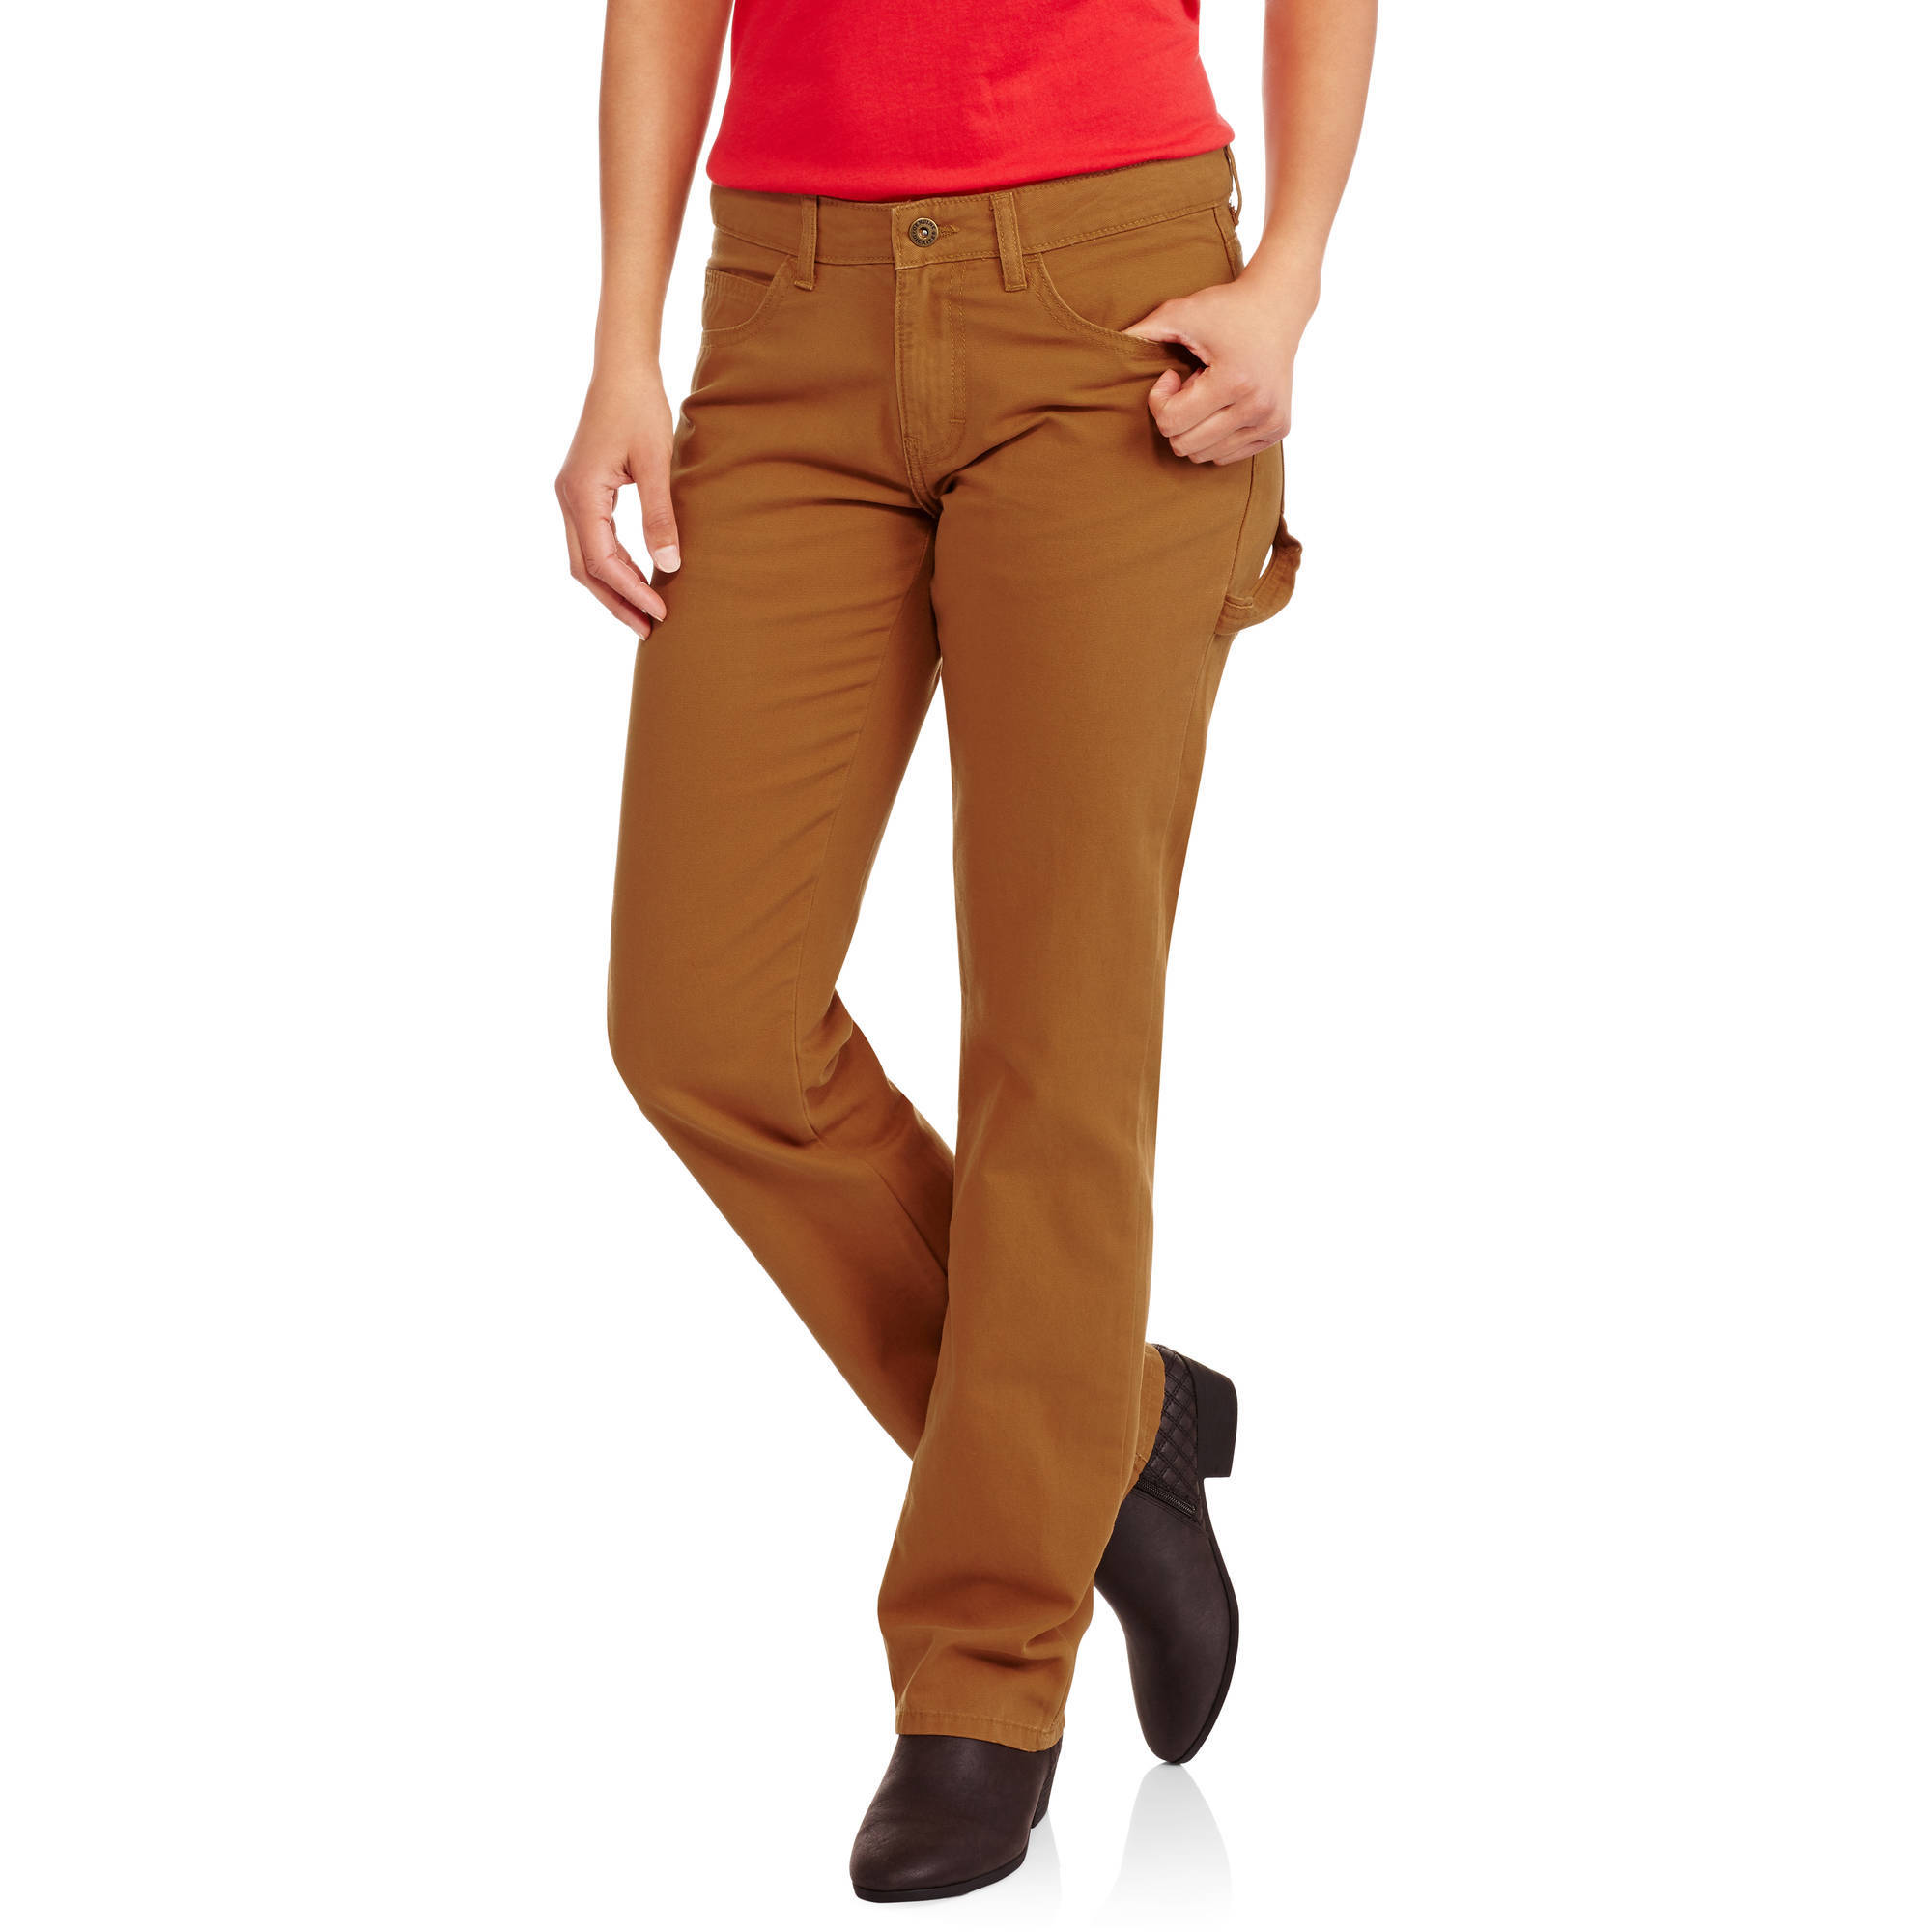 Innovative Womens Dickies Work Pants Walmart  Beautiful Purple Womens Dickies Work Pants Walmart Type ...